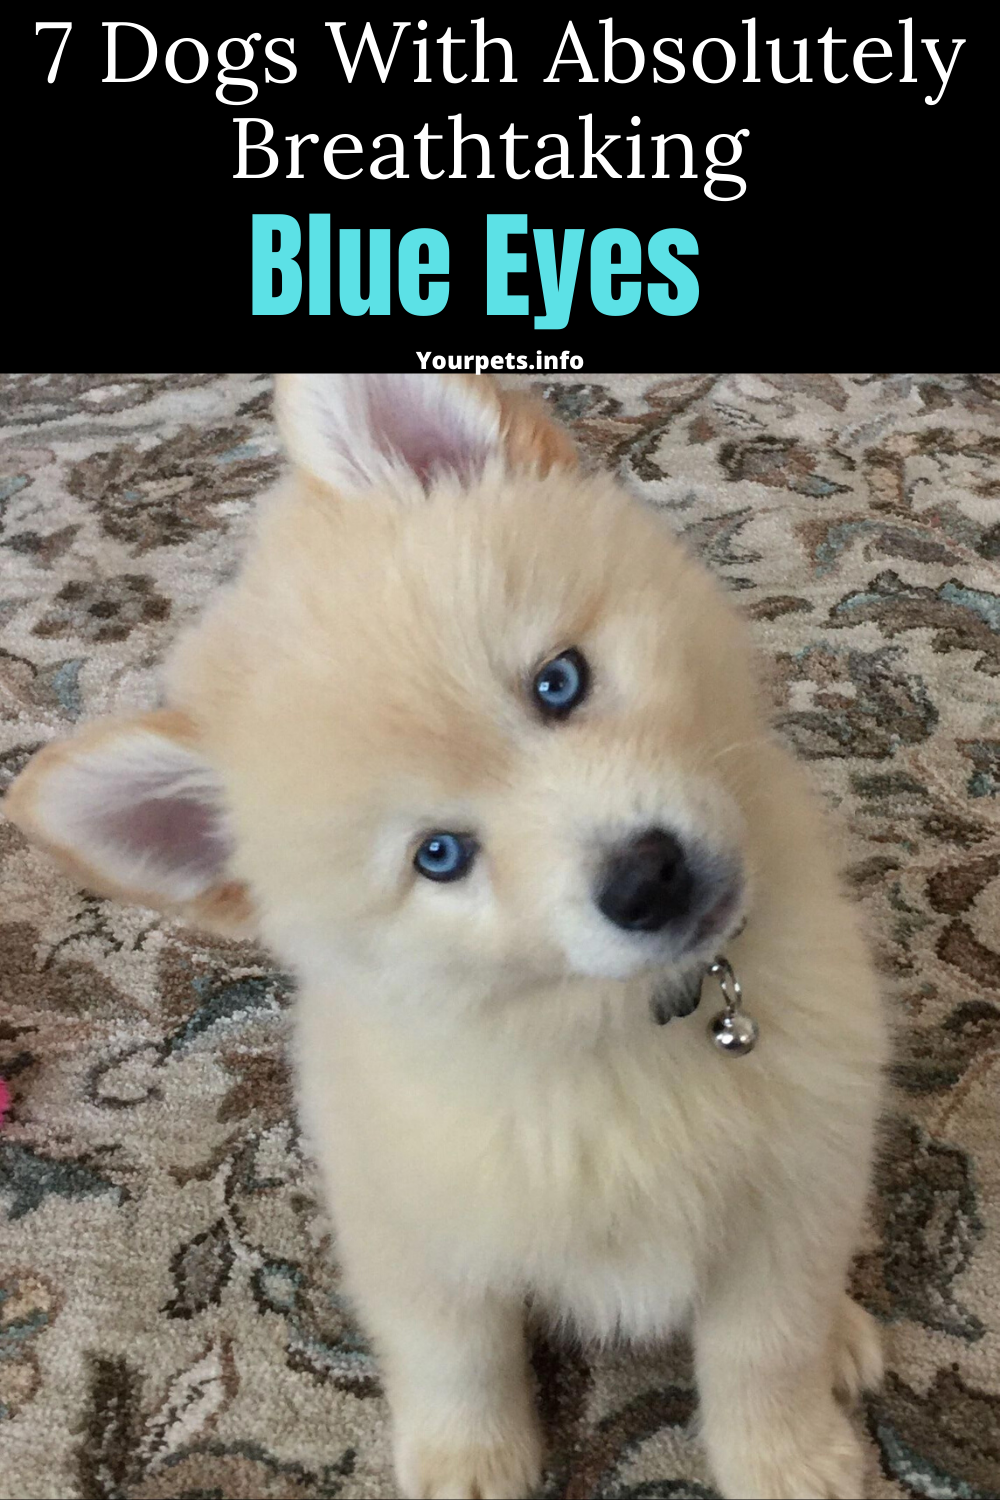 7 Dogs With Absolutely Breathtaking Blue Eyes In 2020 Dogs Animal Lover Cute Cat Breeds